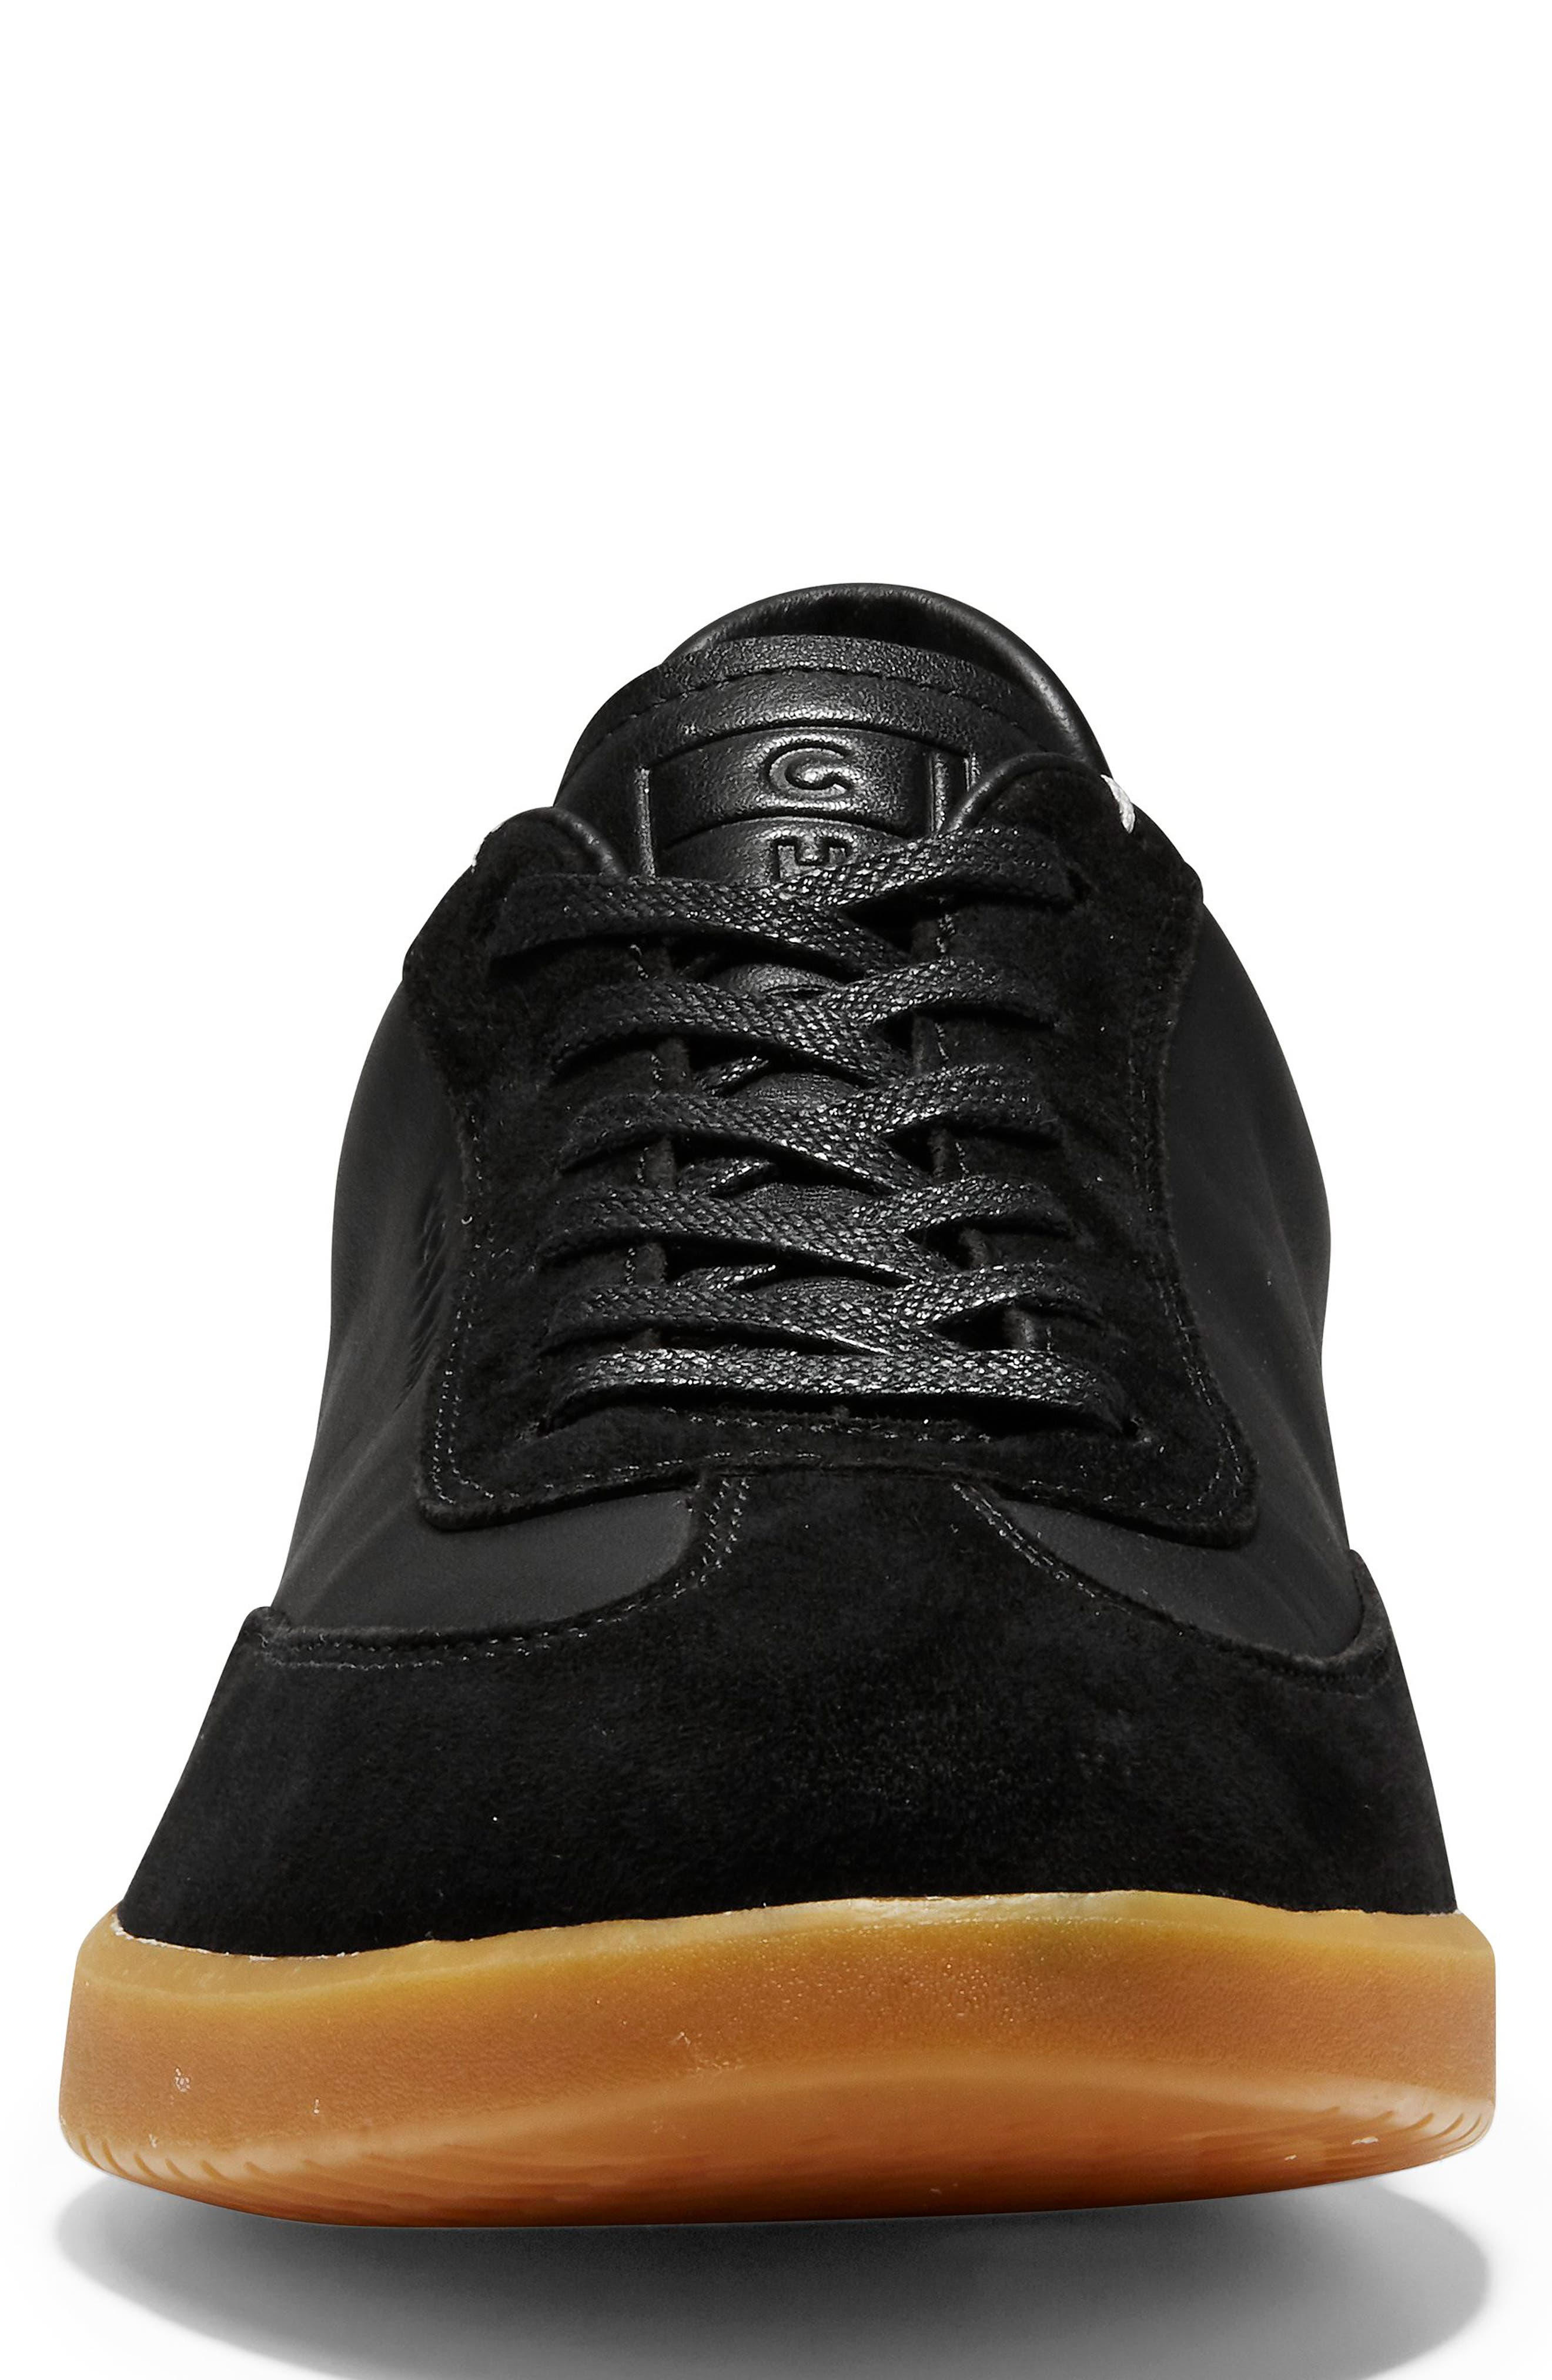 GrandPro Turf Sneaker,                             Alternate thumbnail 4, color,                             BLACK LEATHER/ SUEDE